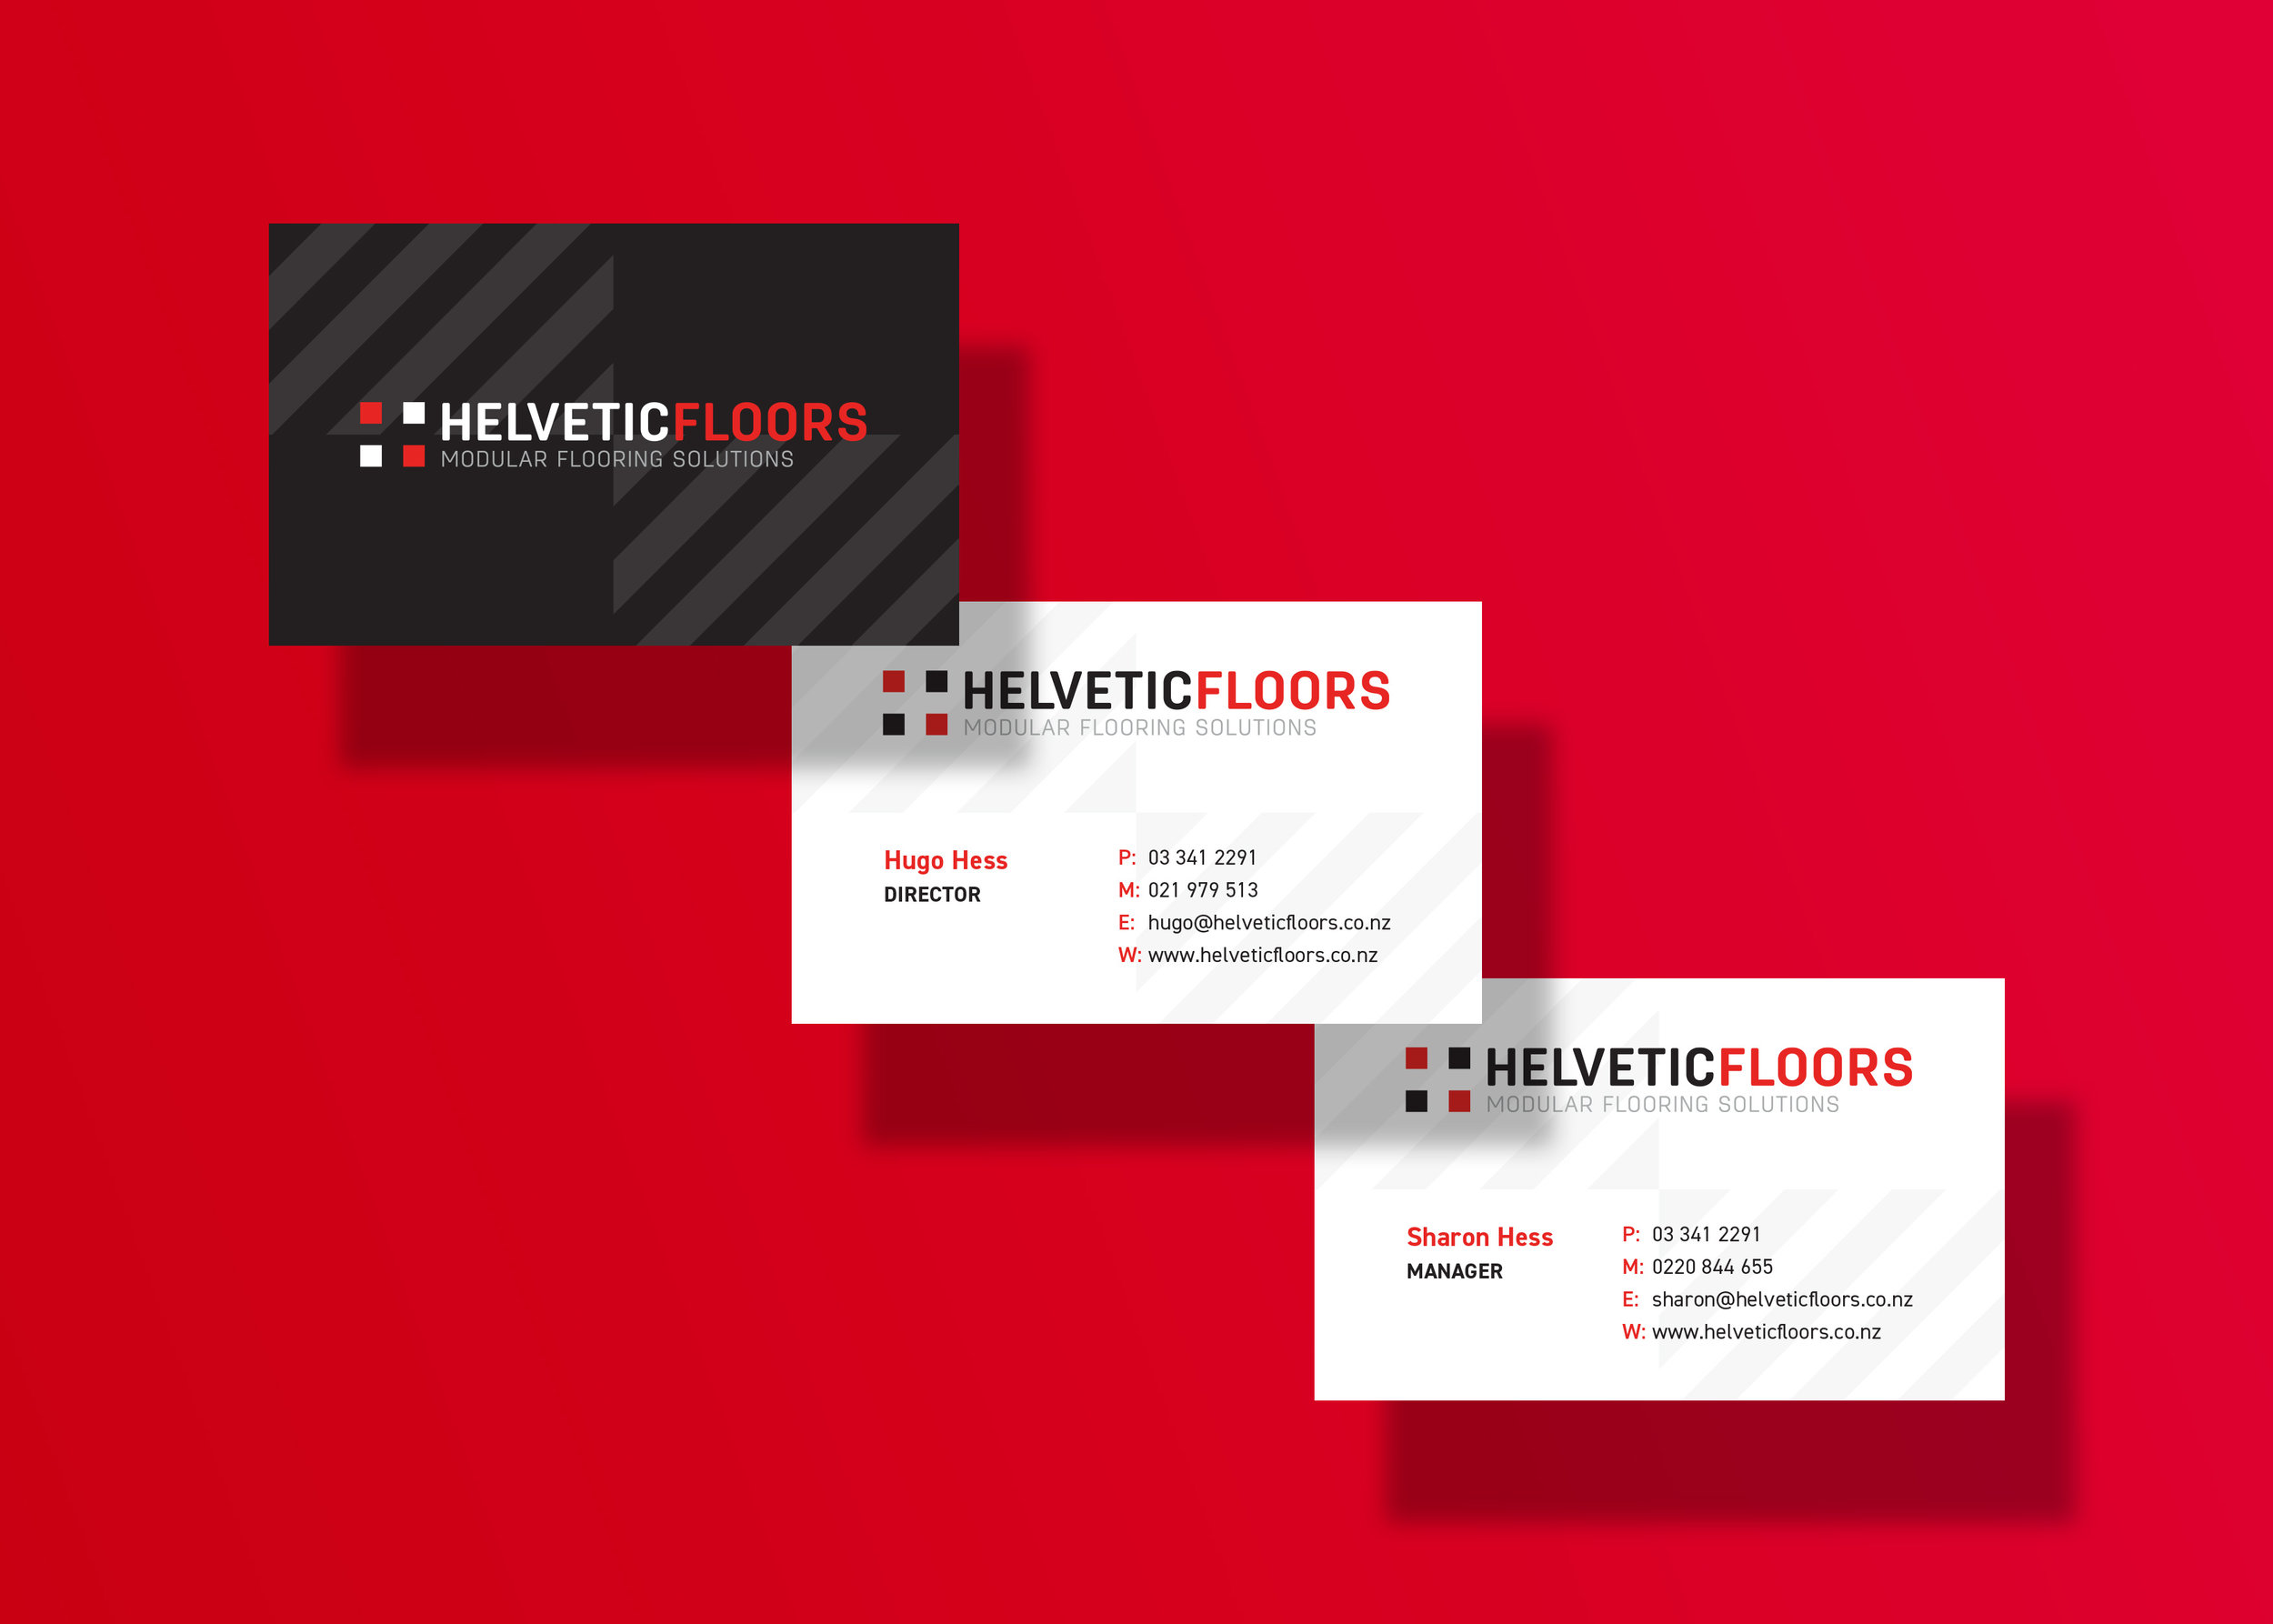 helvetic-floors-business-card-design.jpg